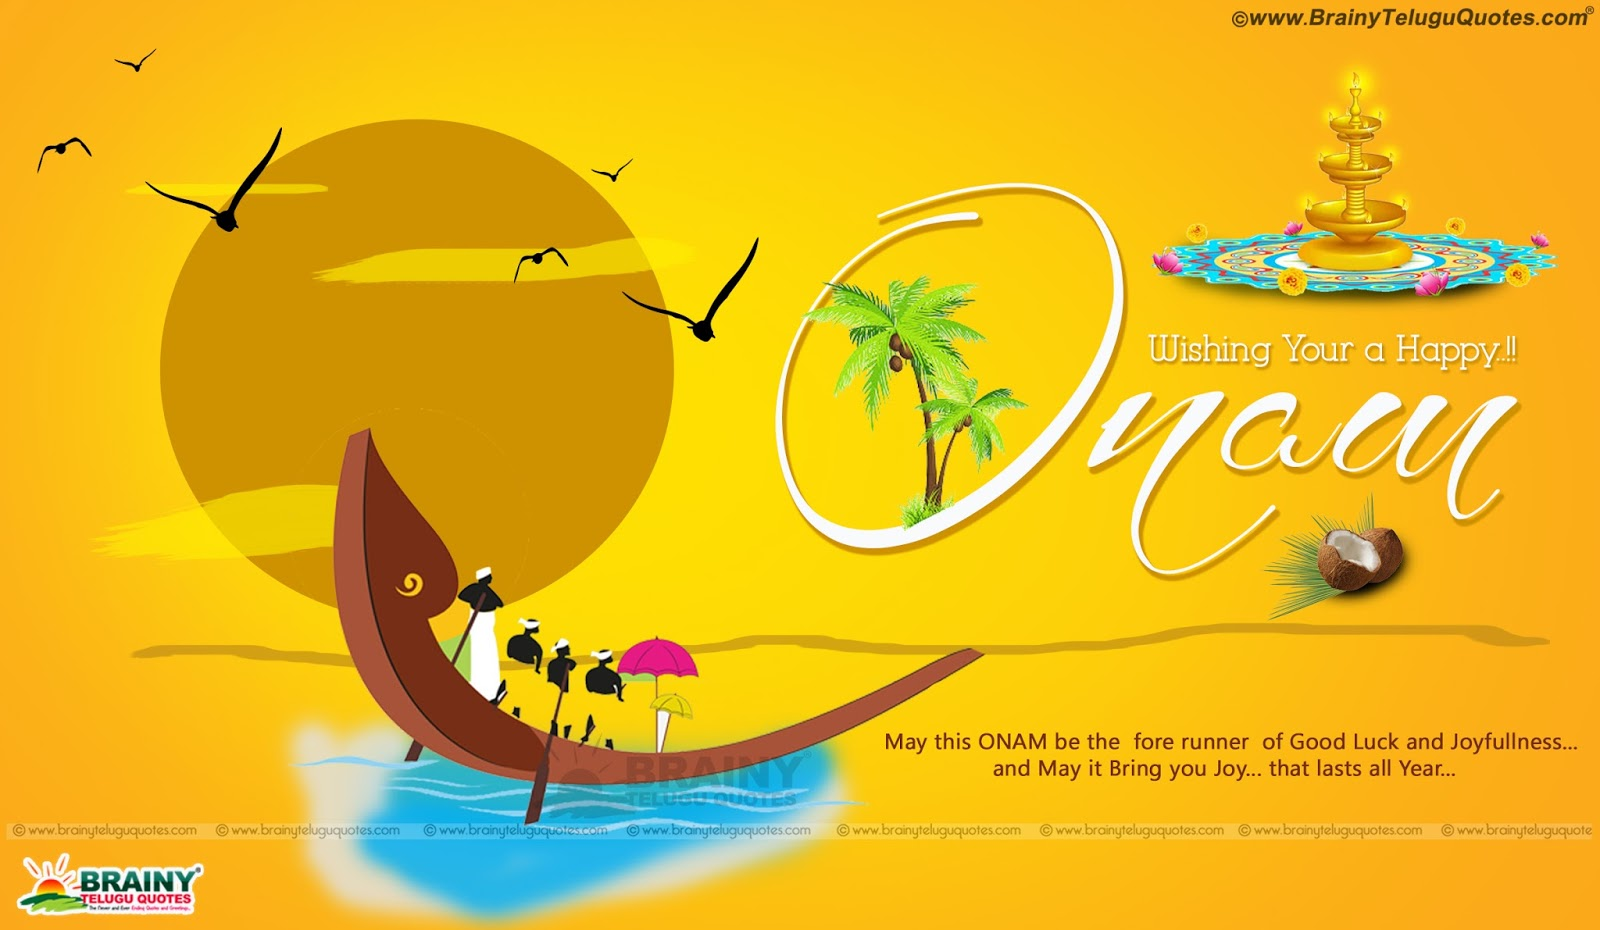 Best onam wishes greetings and whatsapp messages in malayalam best onam wishes greetings and whatsapp messages in malayalam kristyandbryce Image collections